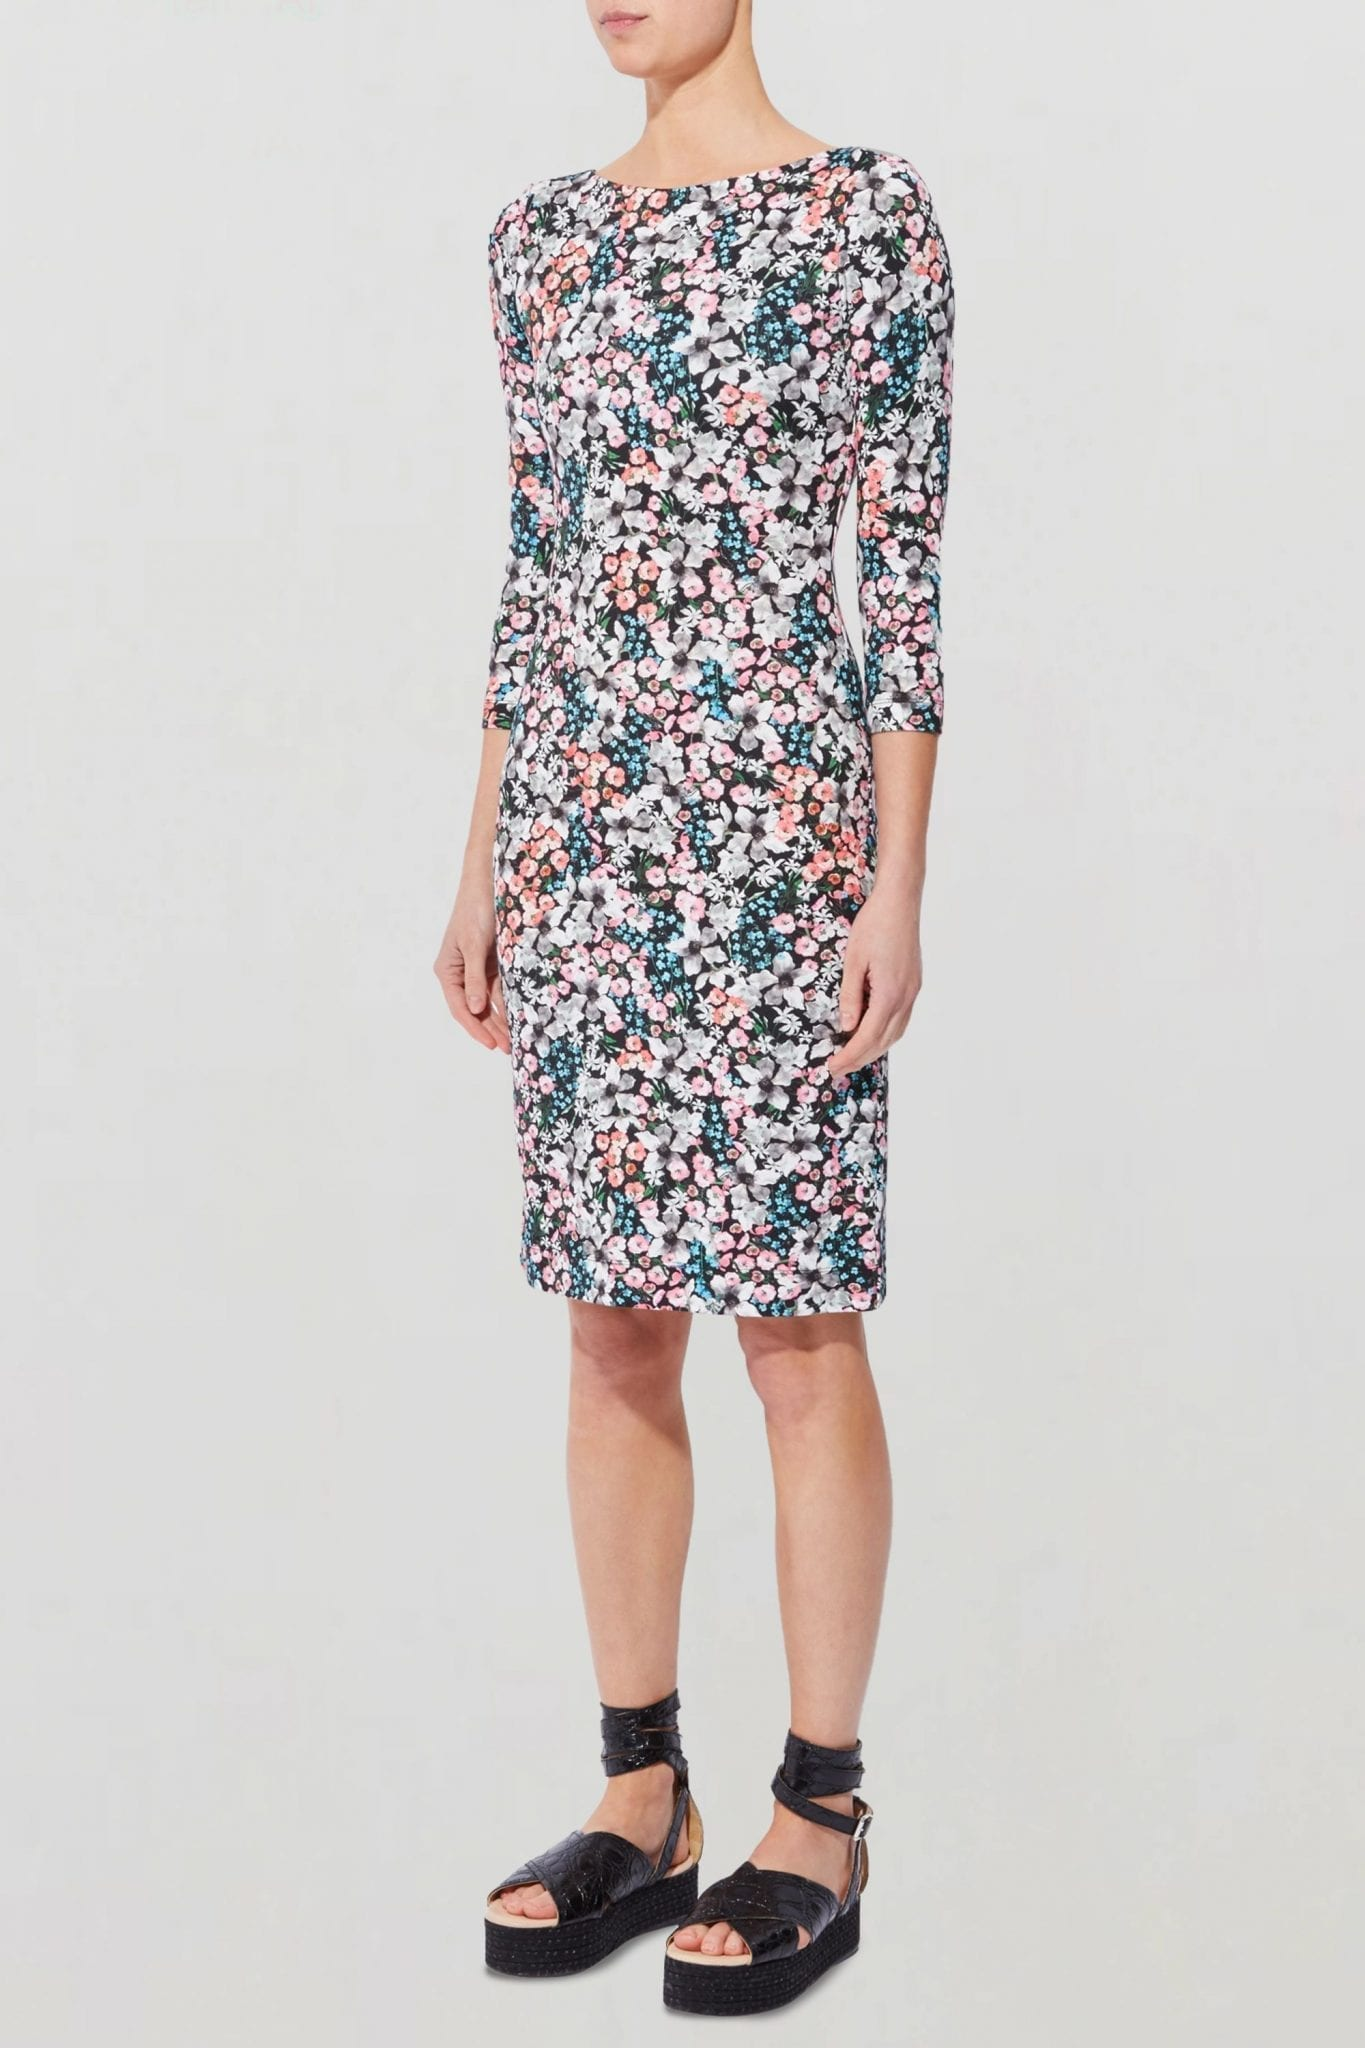 ERDEM Reese Floral-print Stretch-ponte Dress